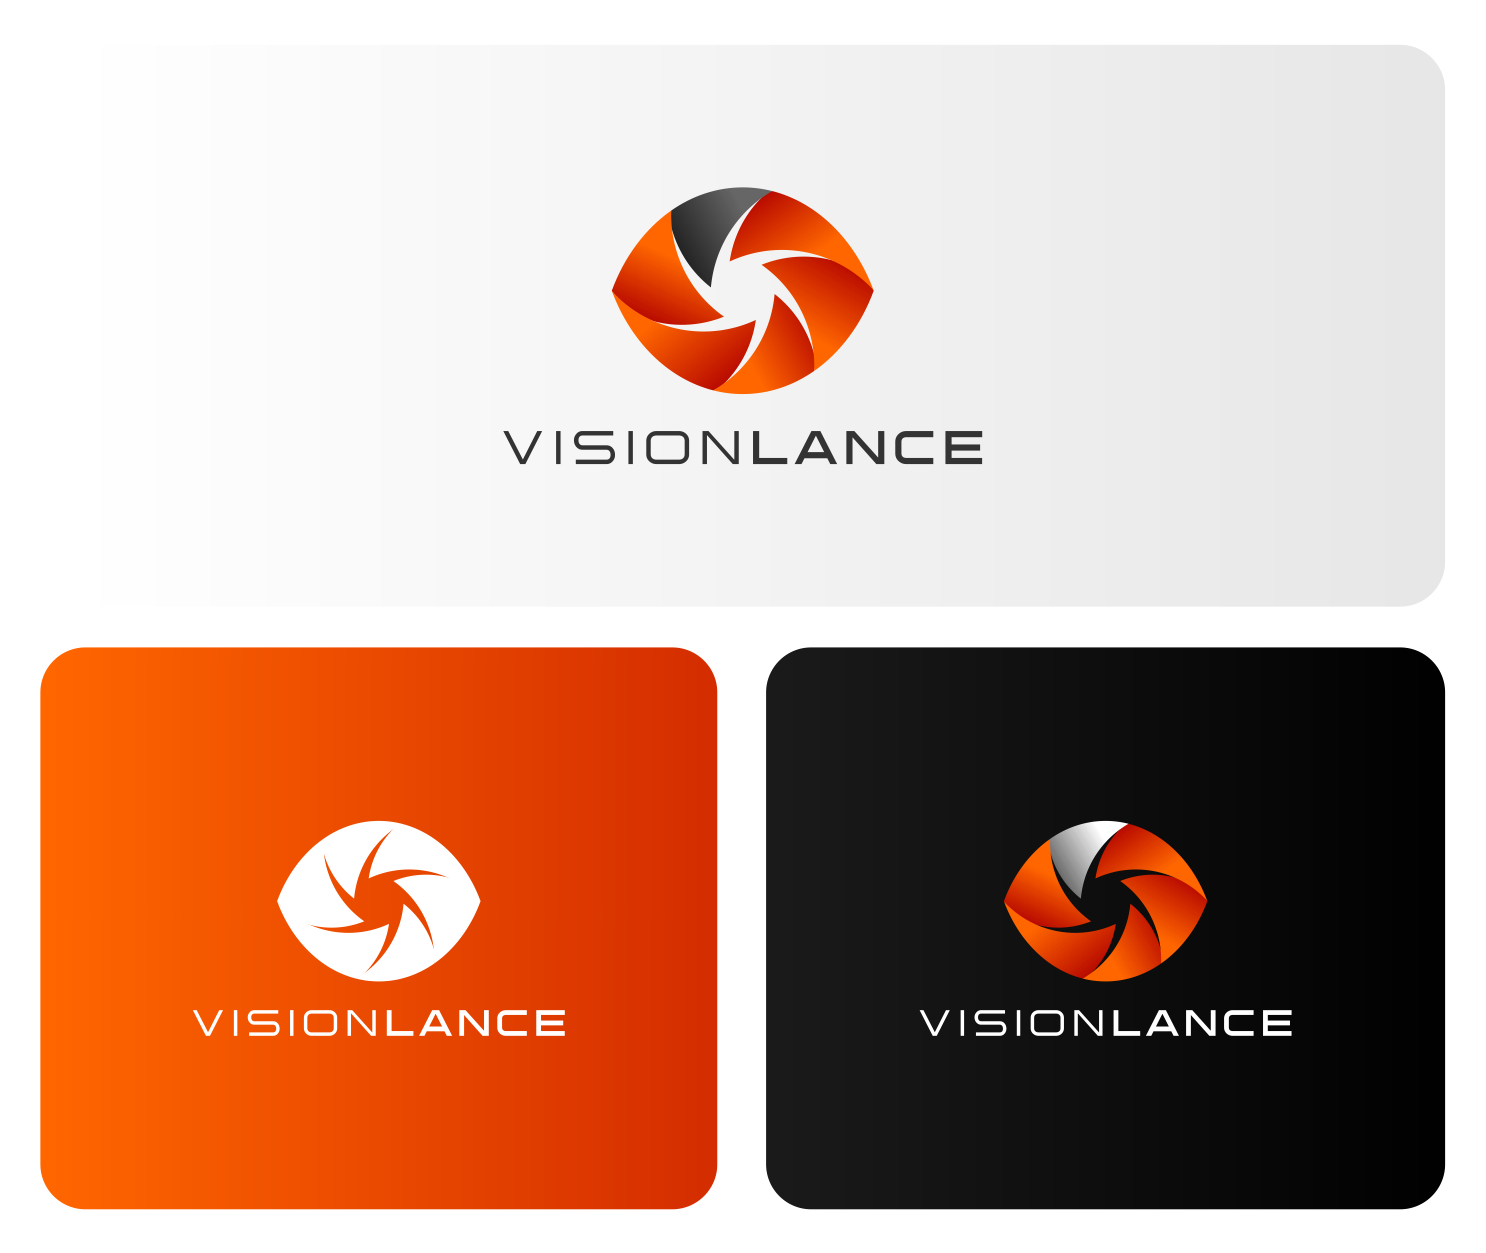 Vision Lance needs a new logo